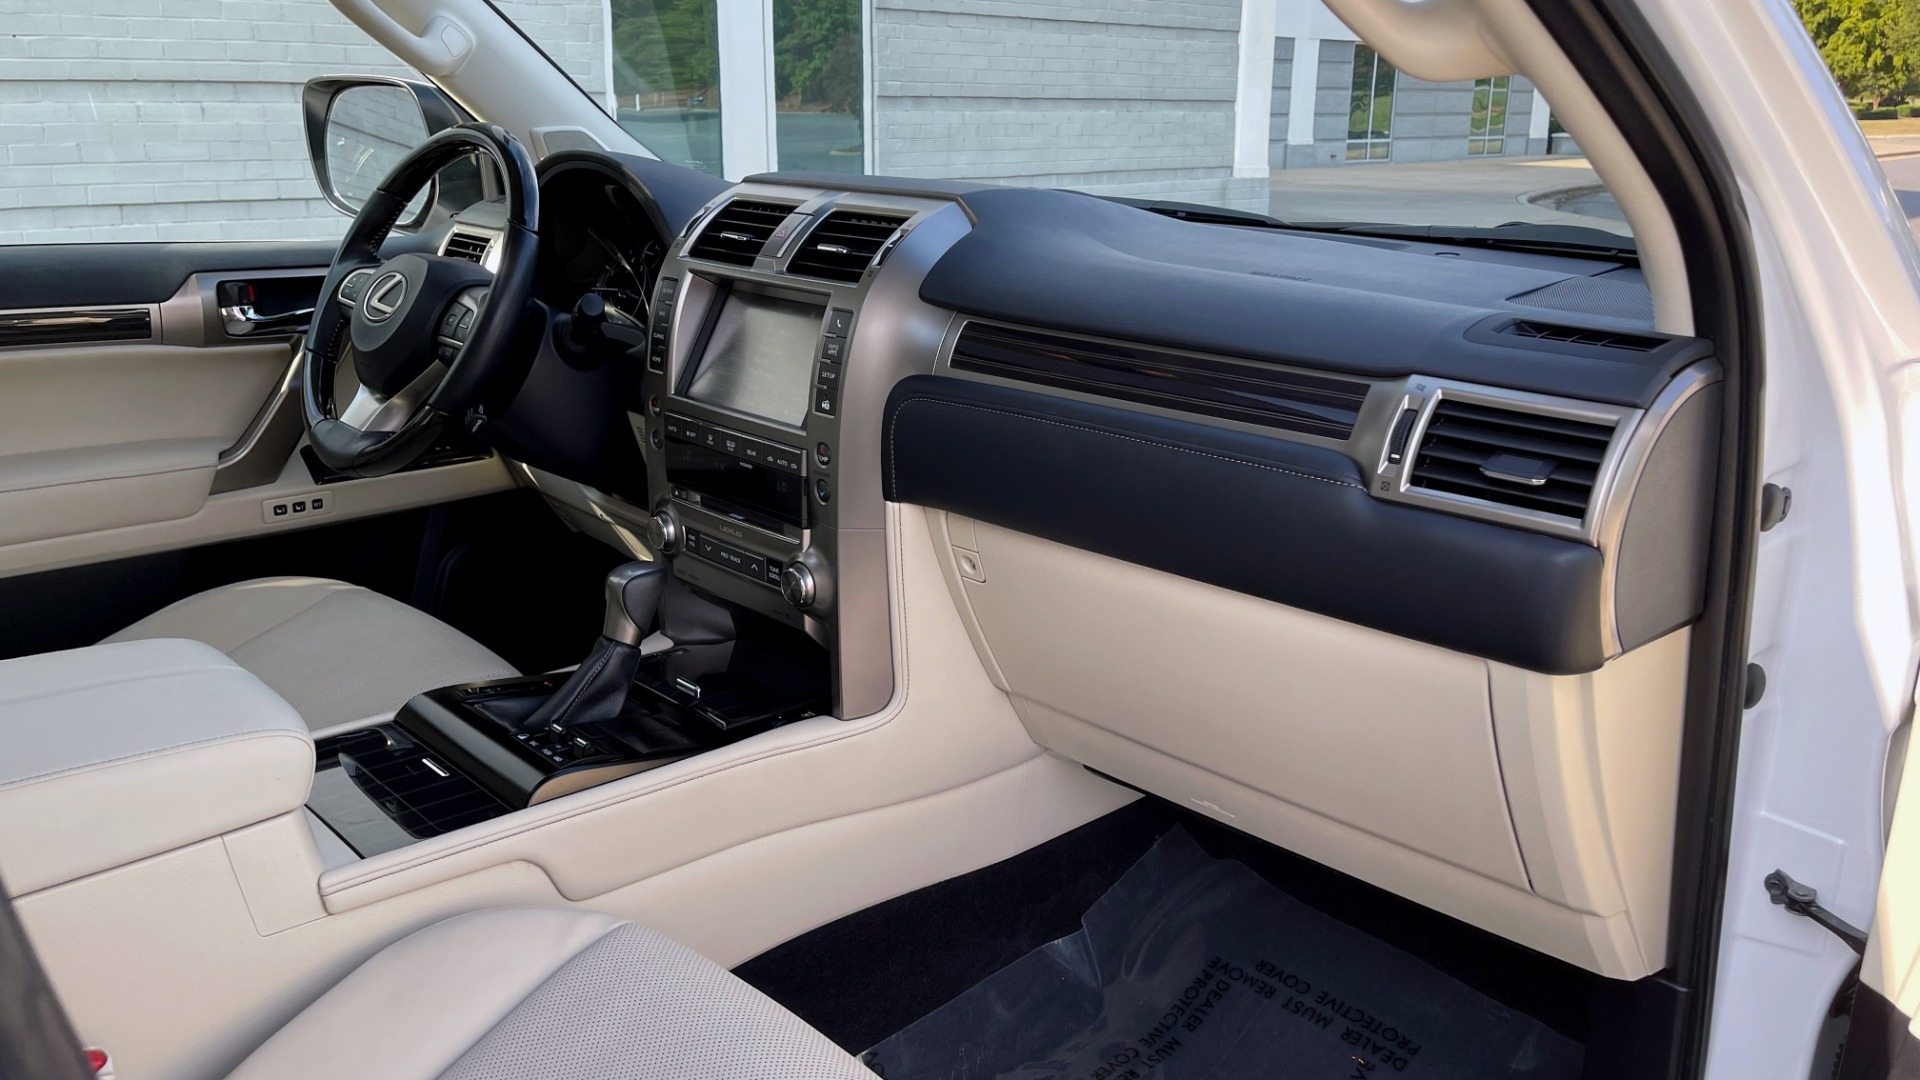 Used 2020 Lexus GX 460 PREMIUM / AWD / NAV / SUNROOF / 3-ROW / REARVIEW for sale $54,495 at Formula Imports in Charlotte NC 28227 64